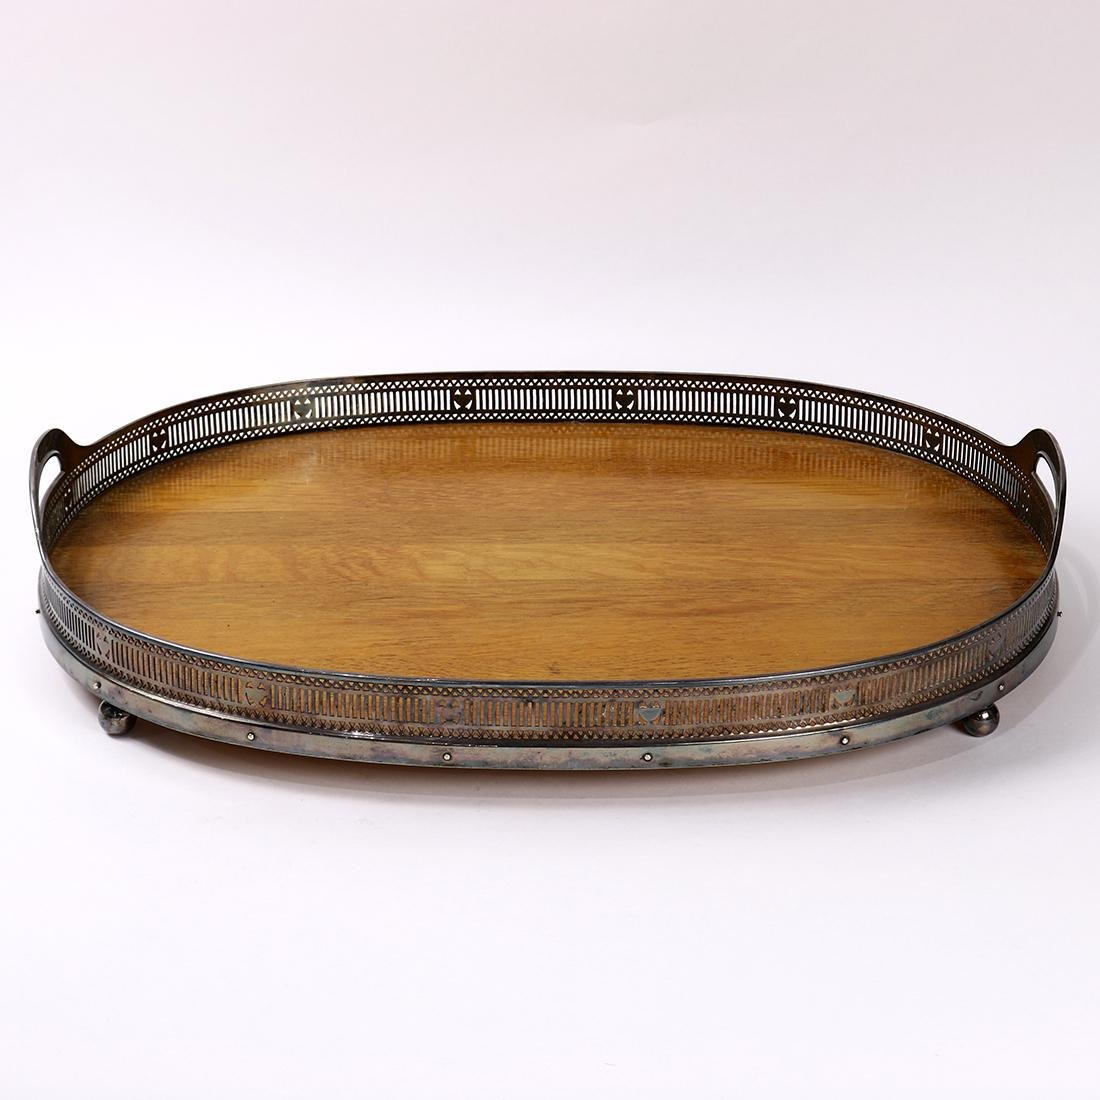 American Gorham silverplate tea tray, the inset wood